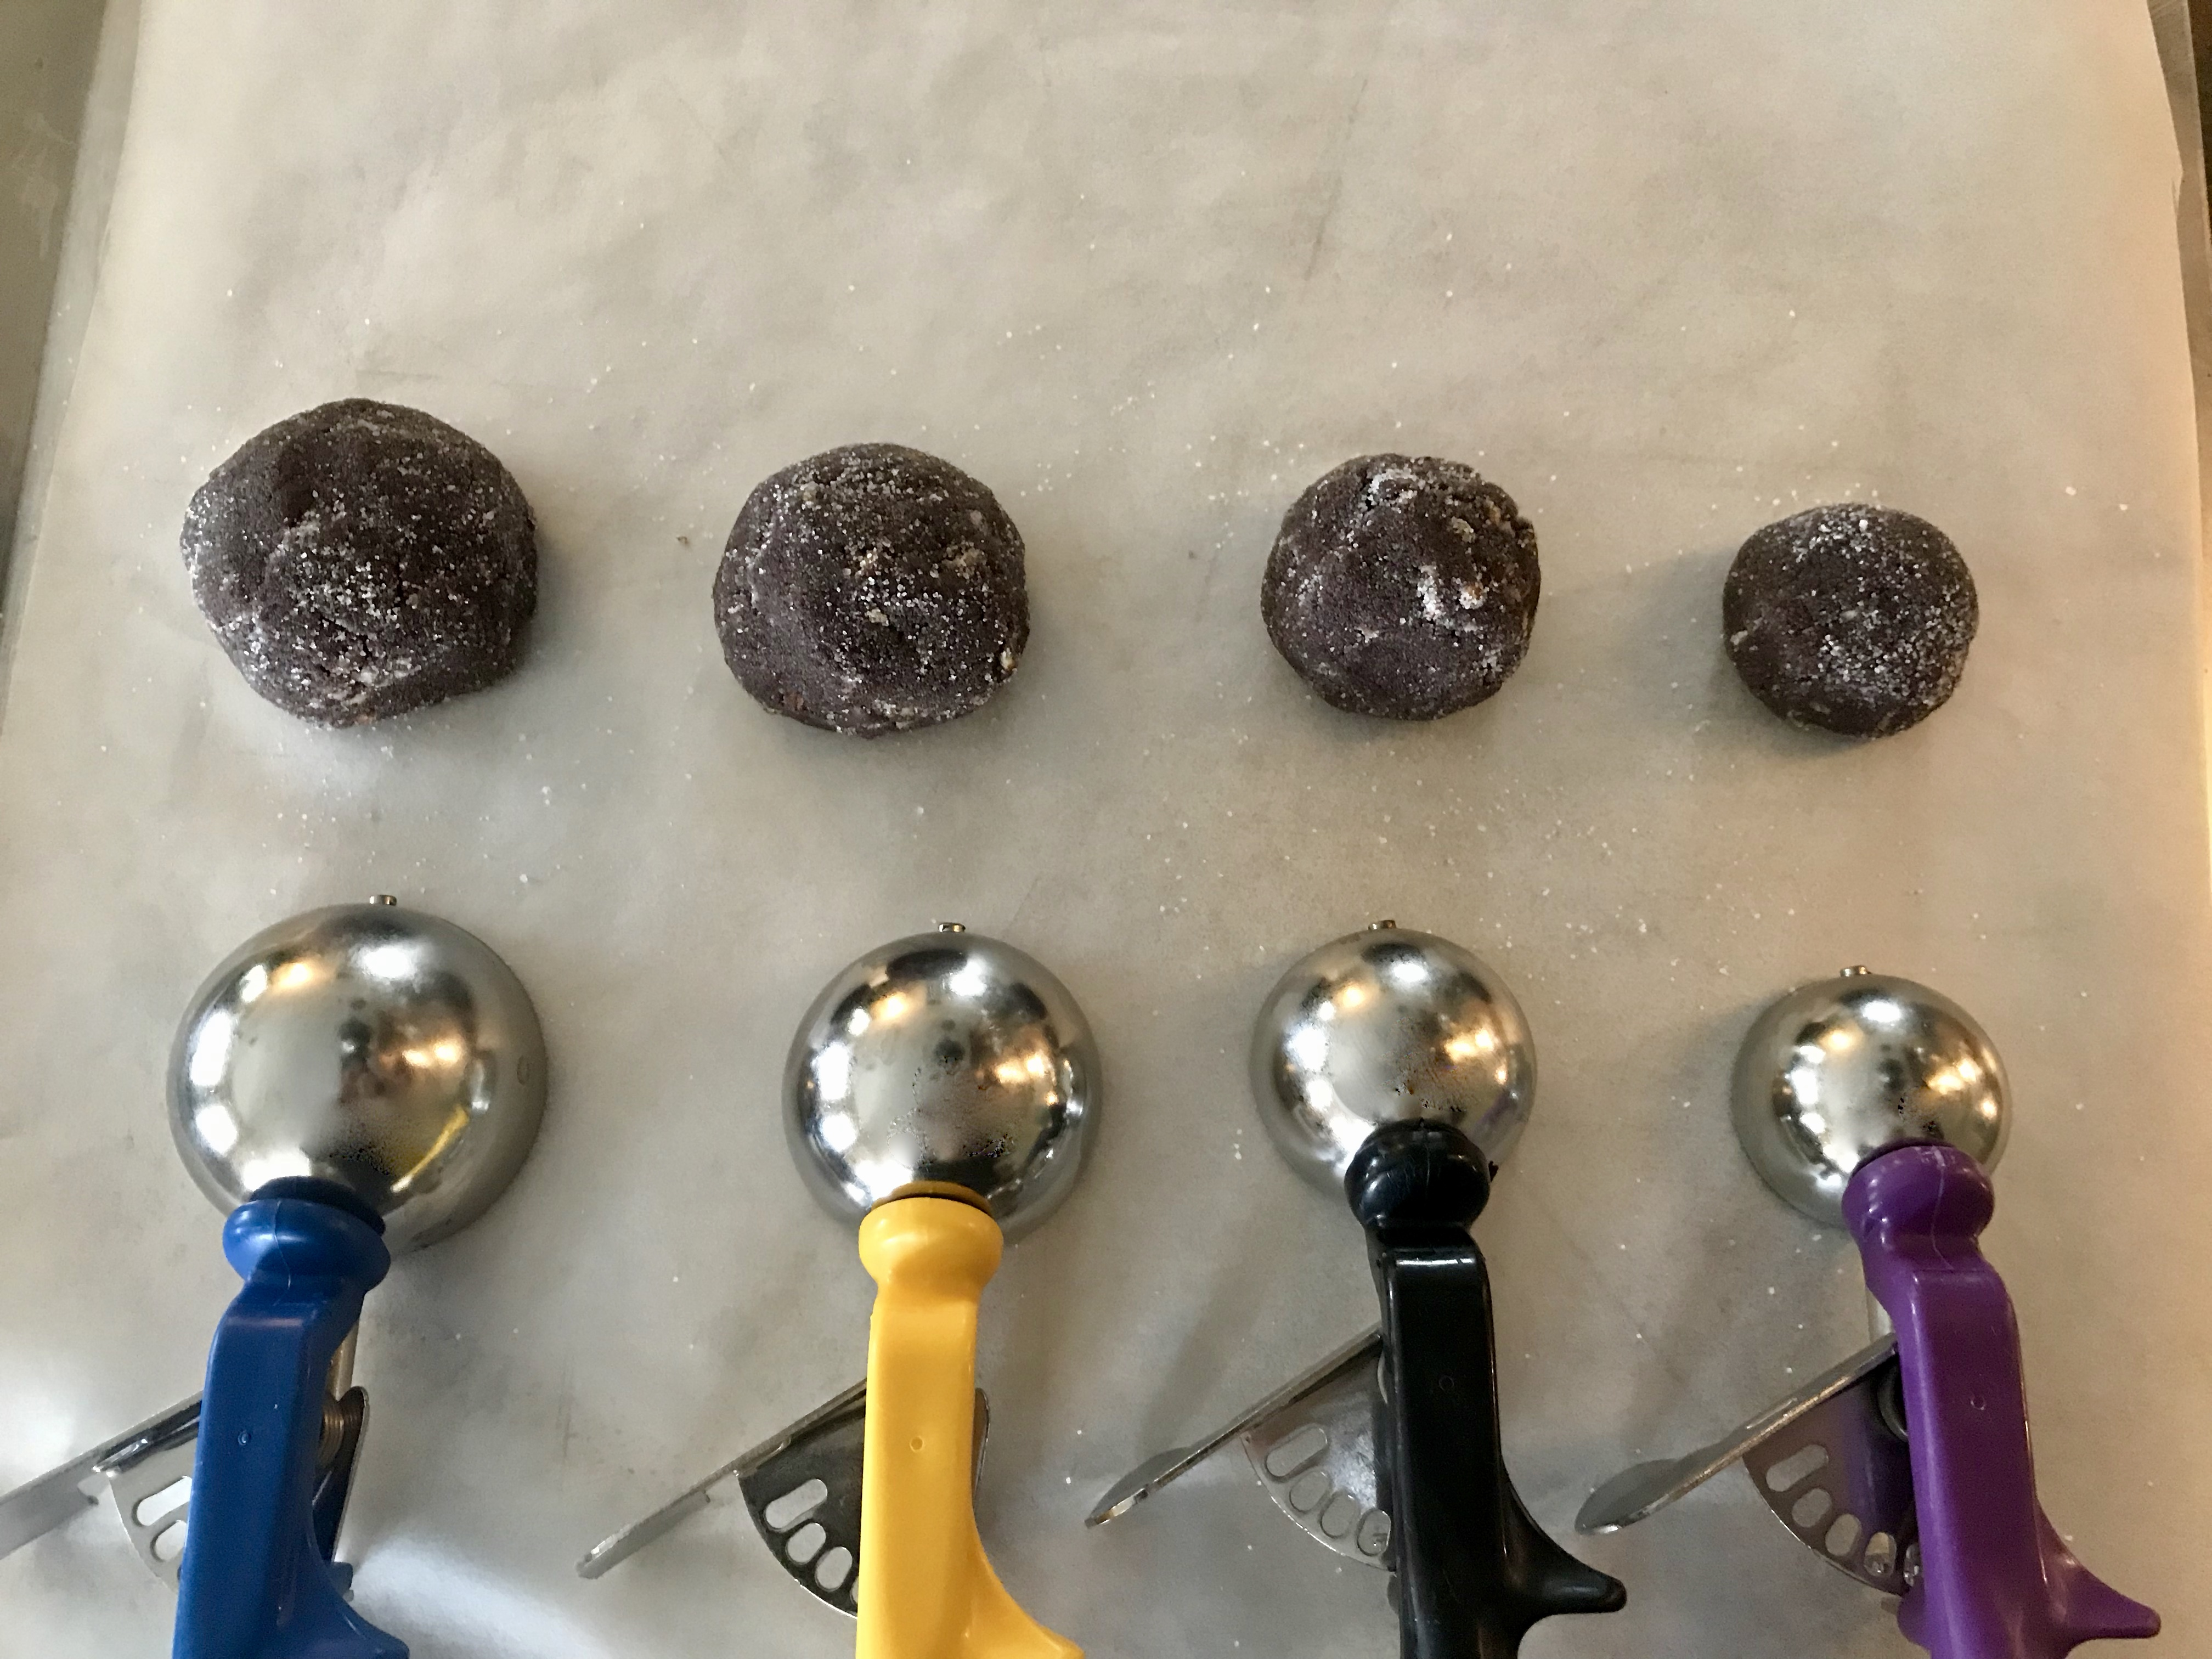 Different dishers with varying sizes of cookie dough